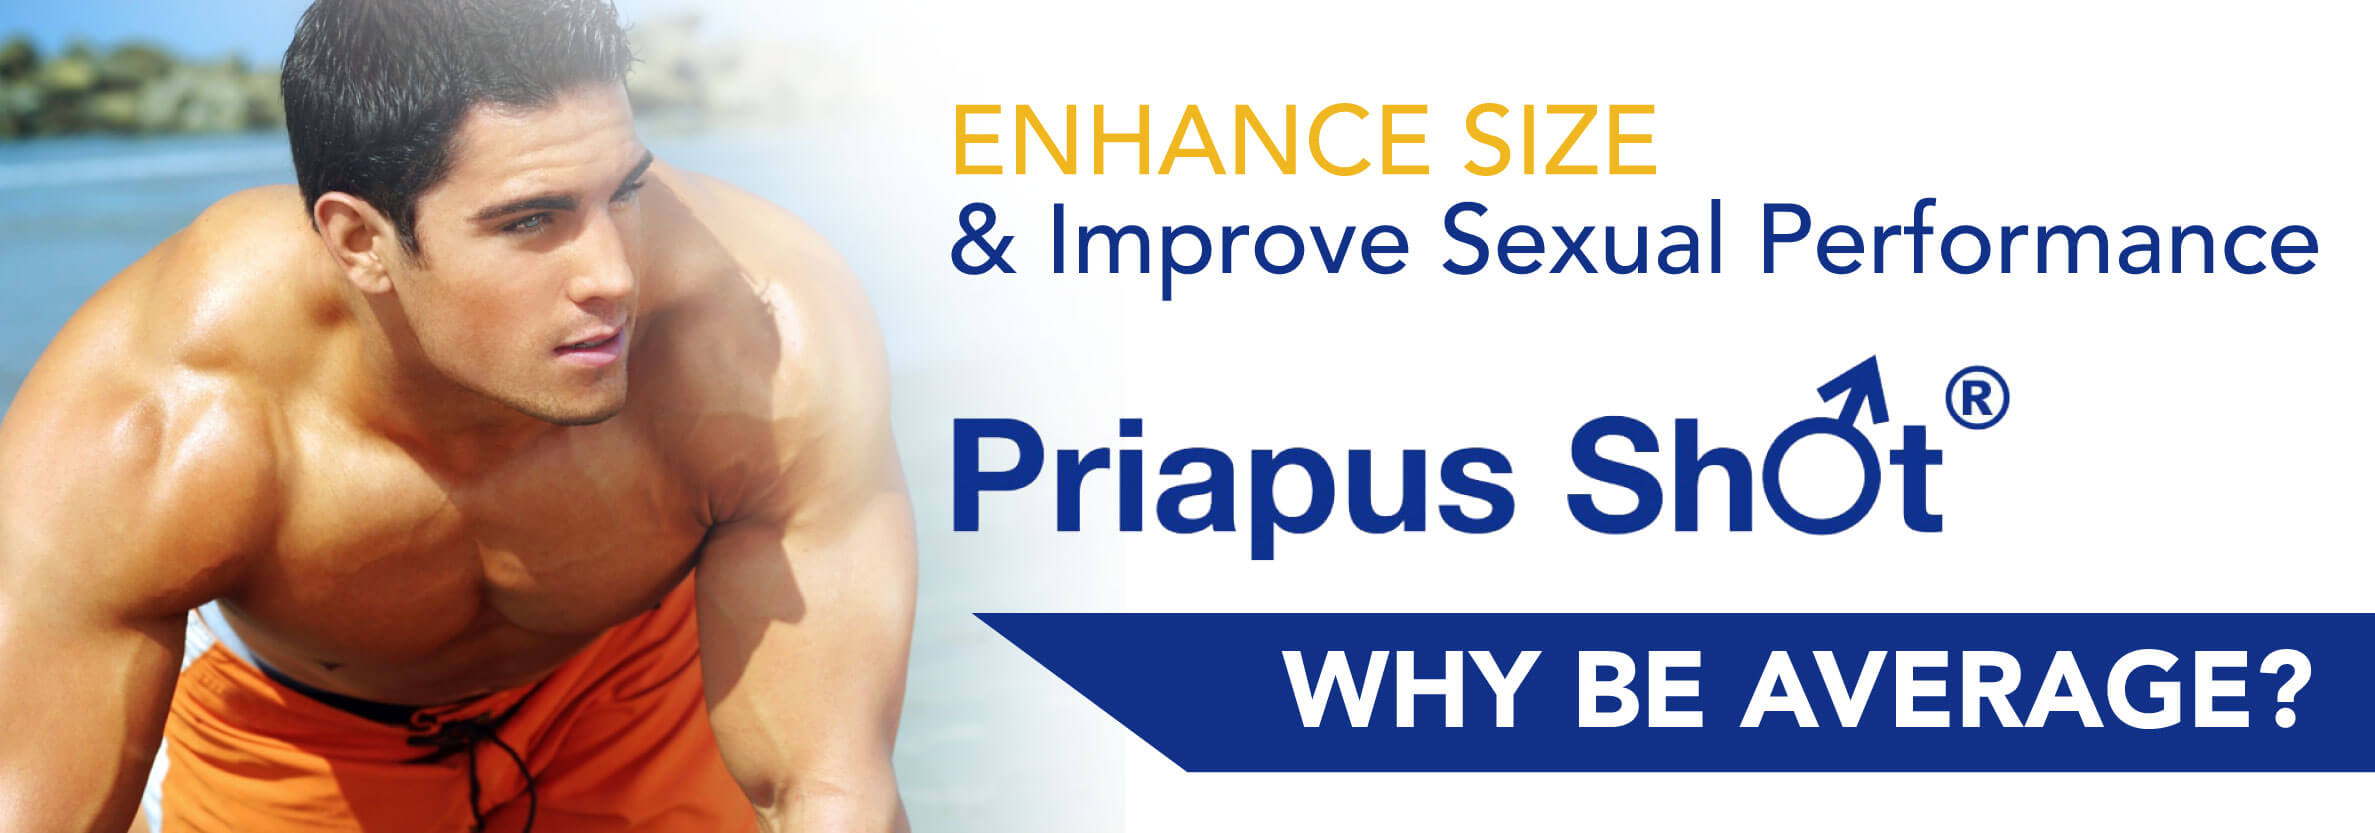 P-Shot Priapus Shot and GAINSWAve treatments for men